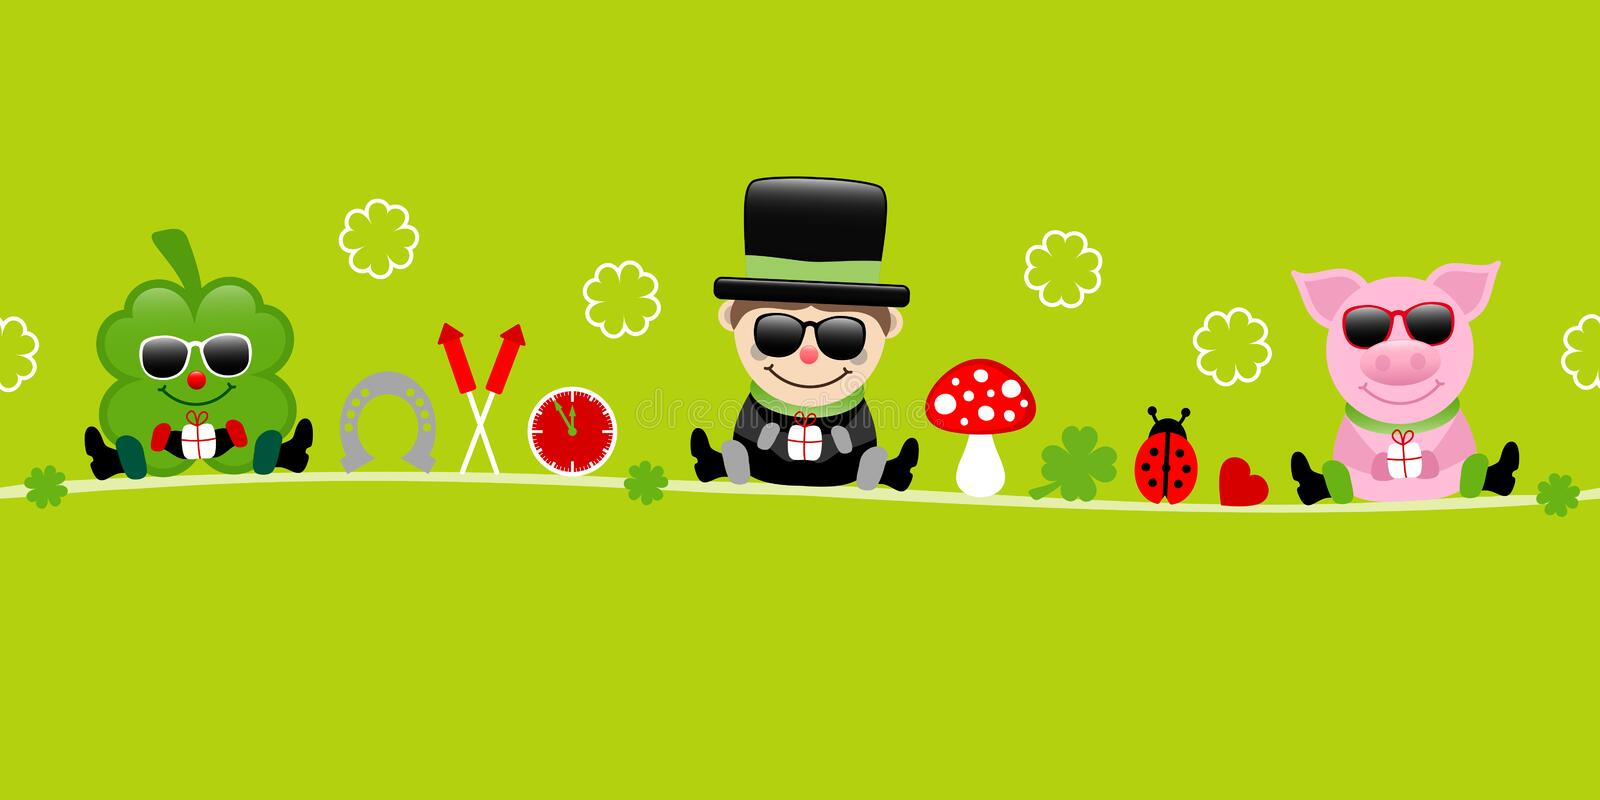 Shamrock Chimney Sweep And Pig With Sunglasses Icons New Years Eve Green. Cute Shamrock Chimney Sweep And Pig With Sunglasses Icons New Years Eve Green royalty free illustration